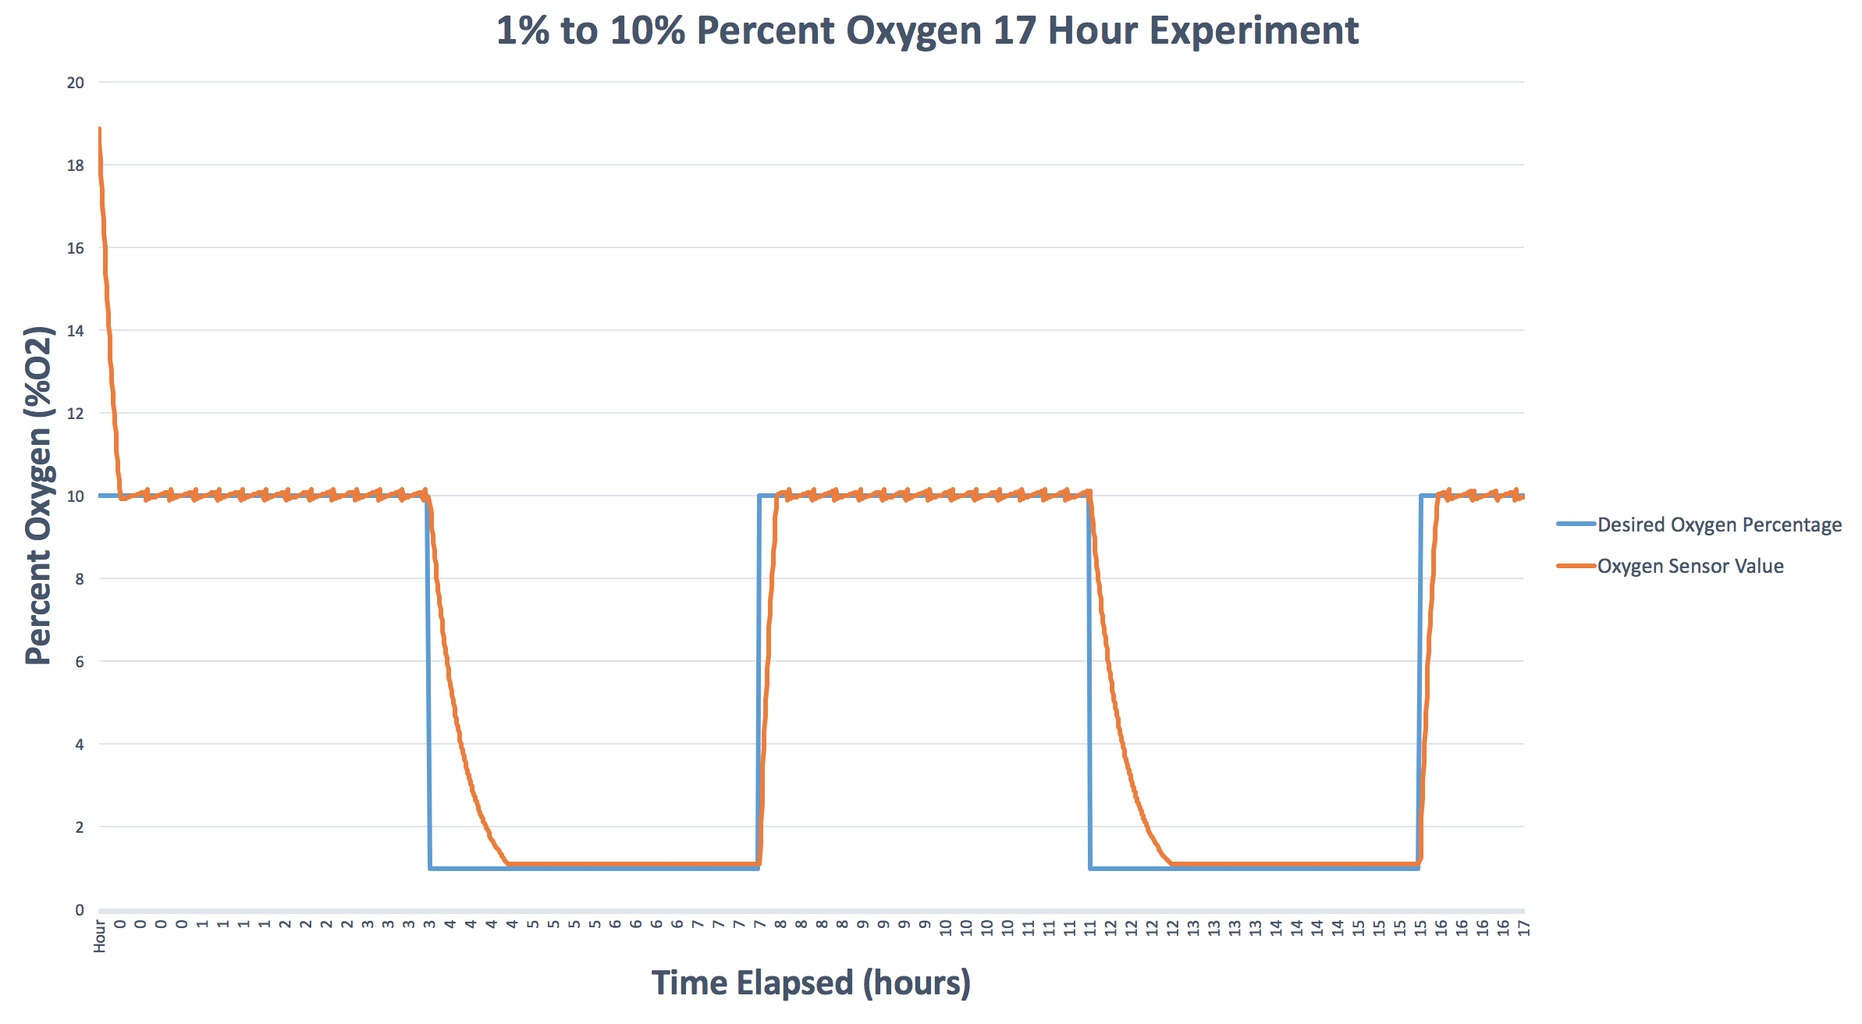 Mixing Air and Nitrogen to Achieve 0% Through 21% Oxygen